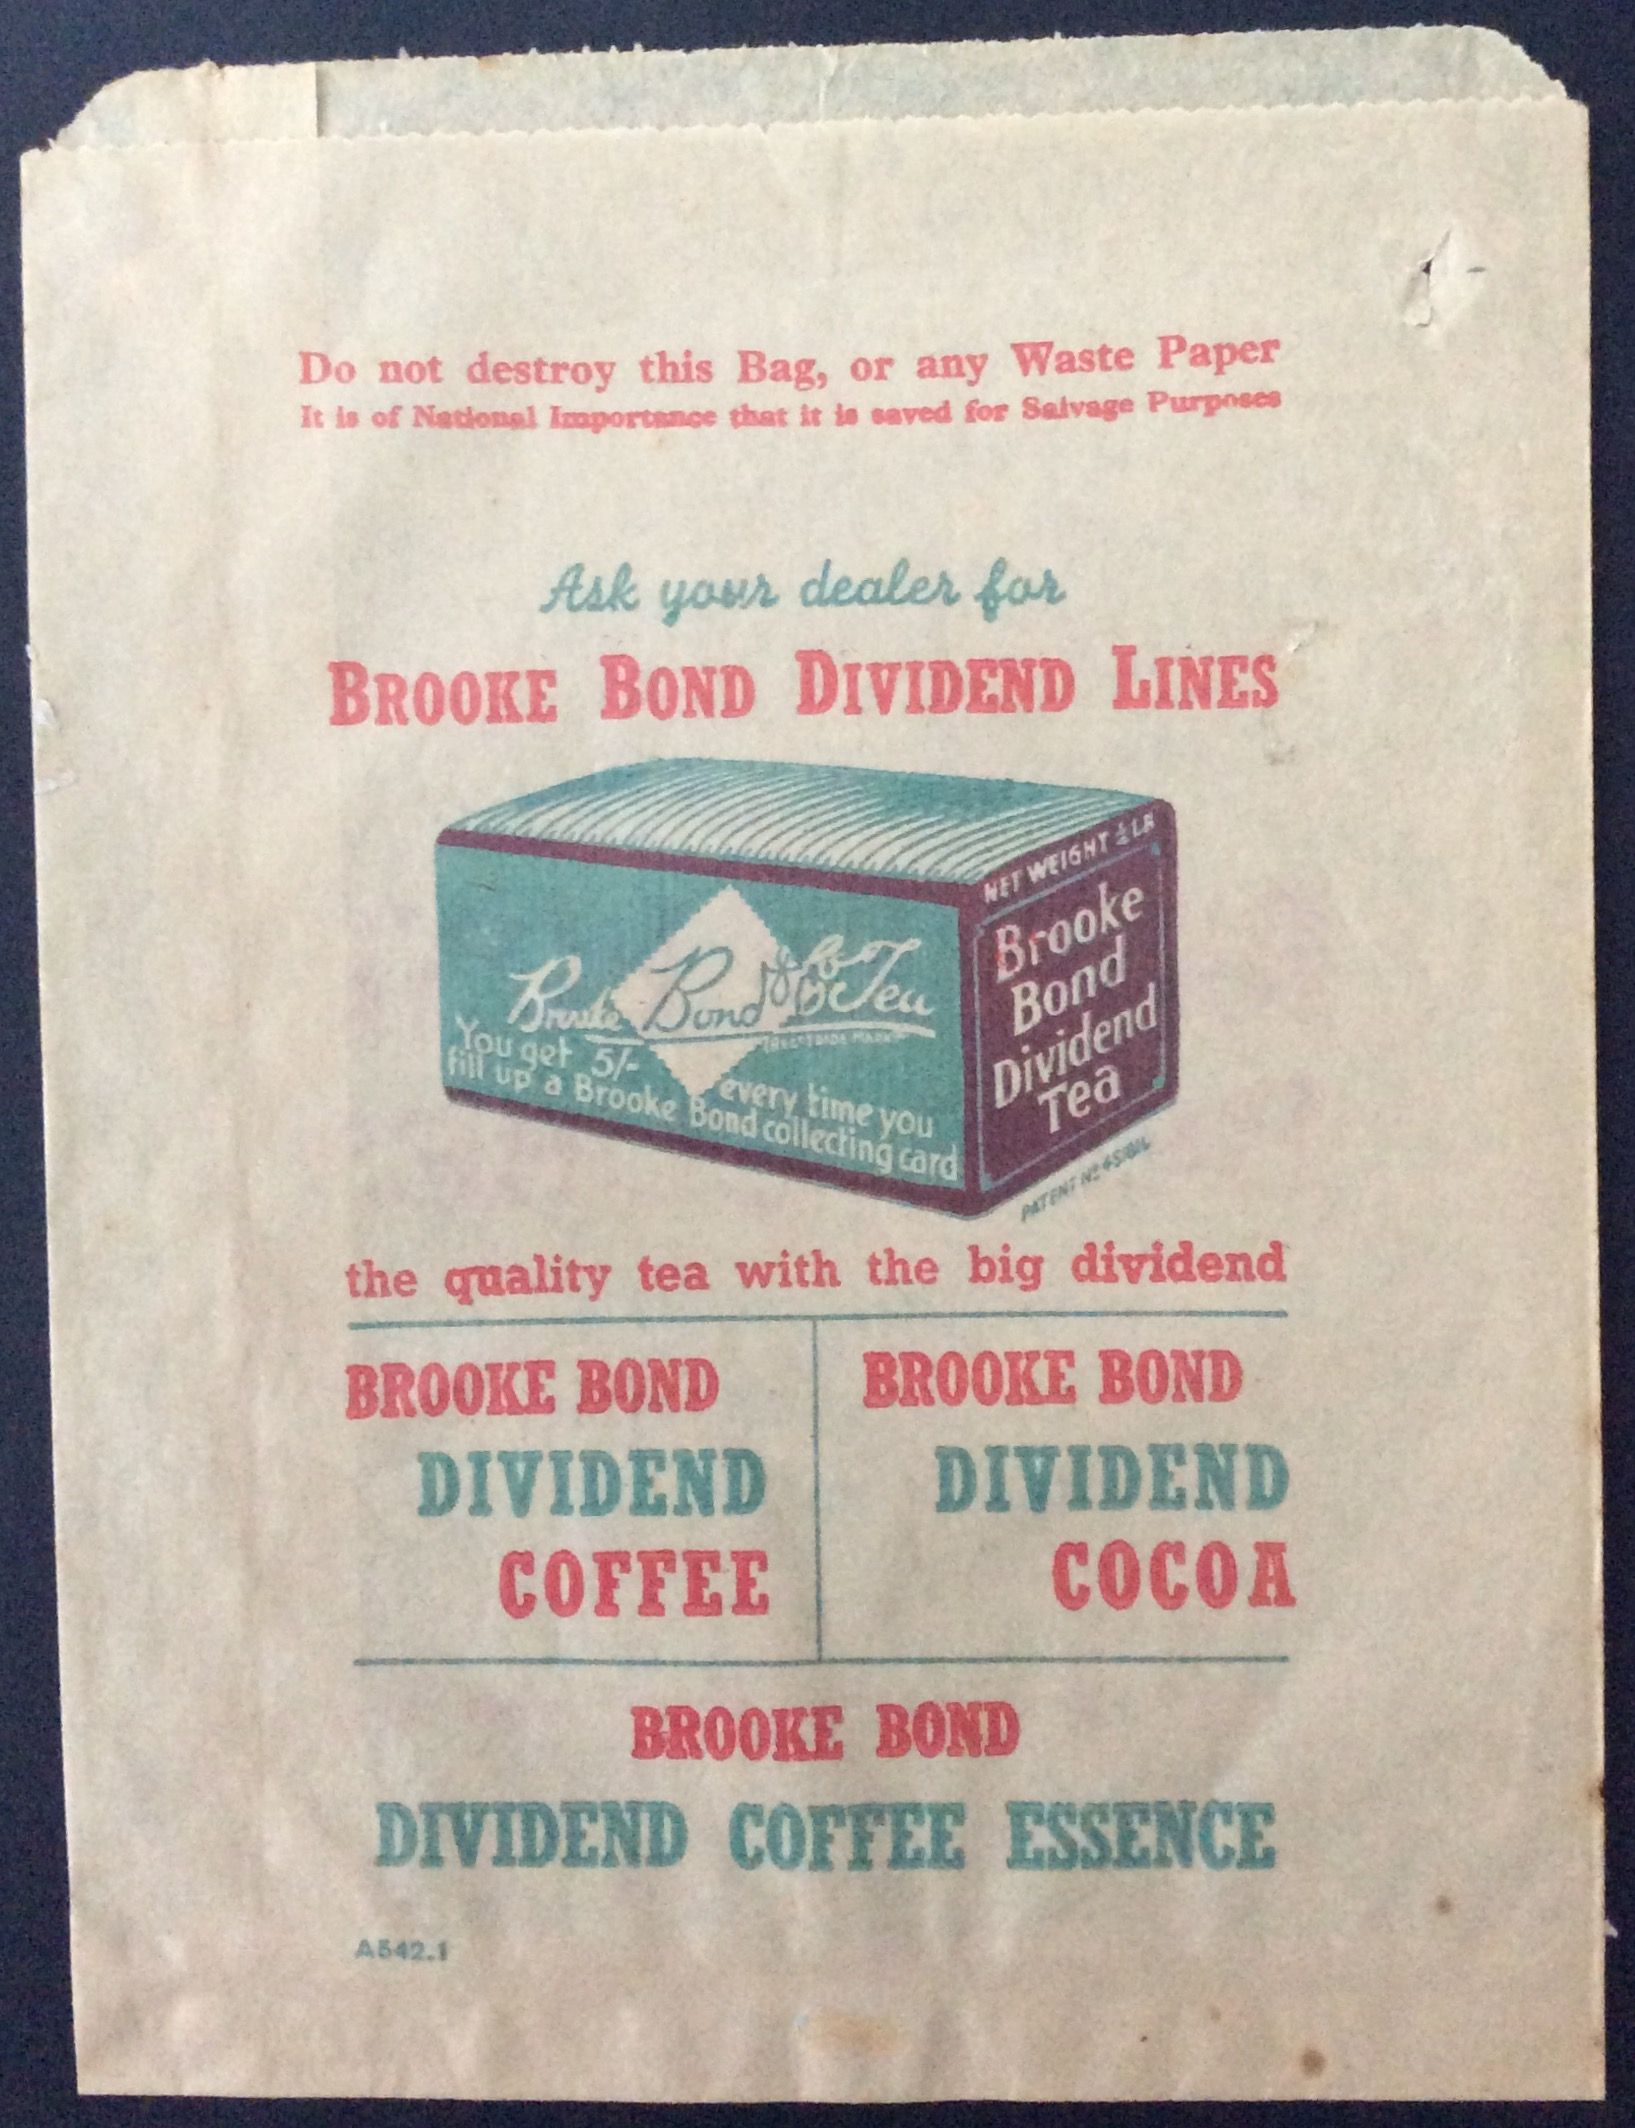 1939-56 Brooke Bond Dividend frontside printed paper bag